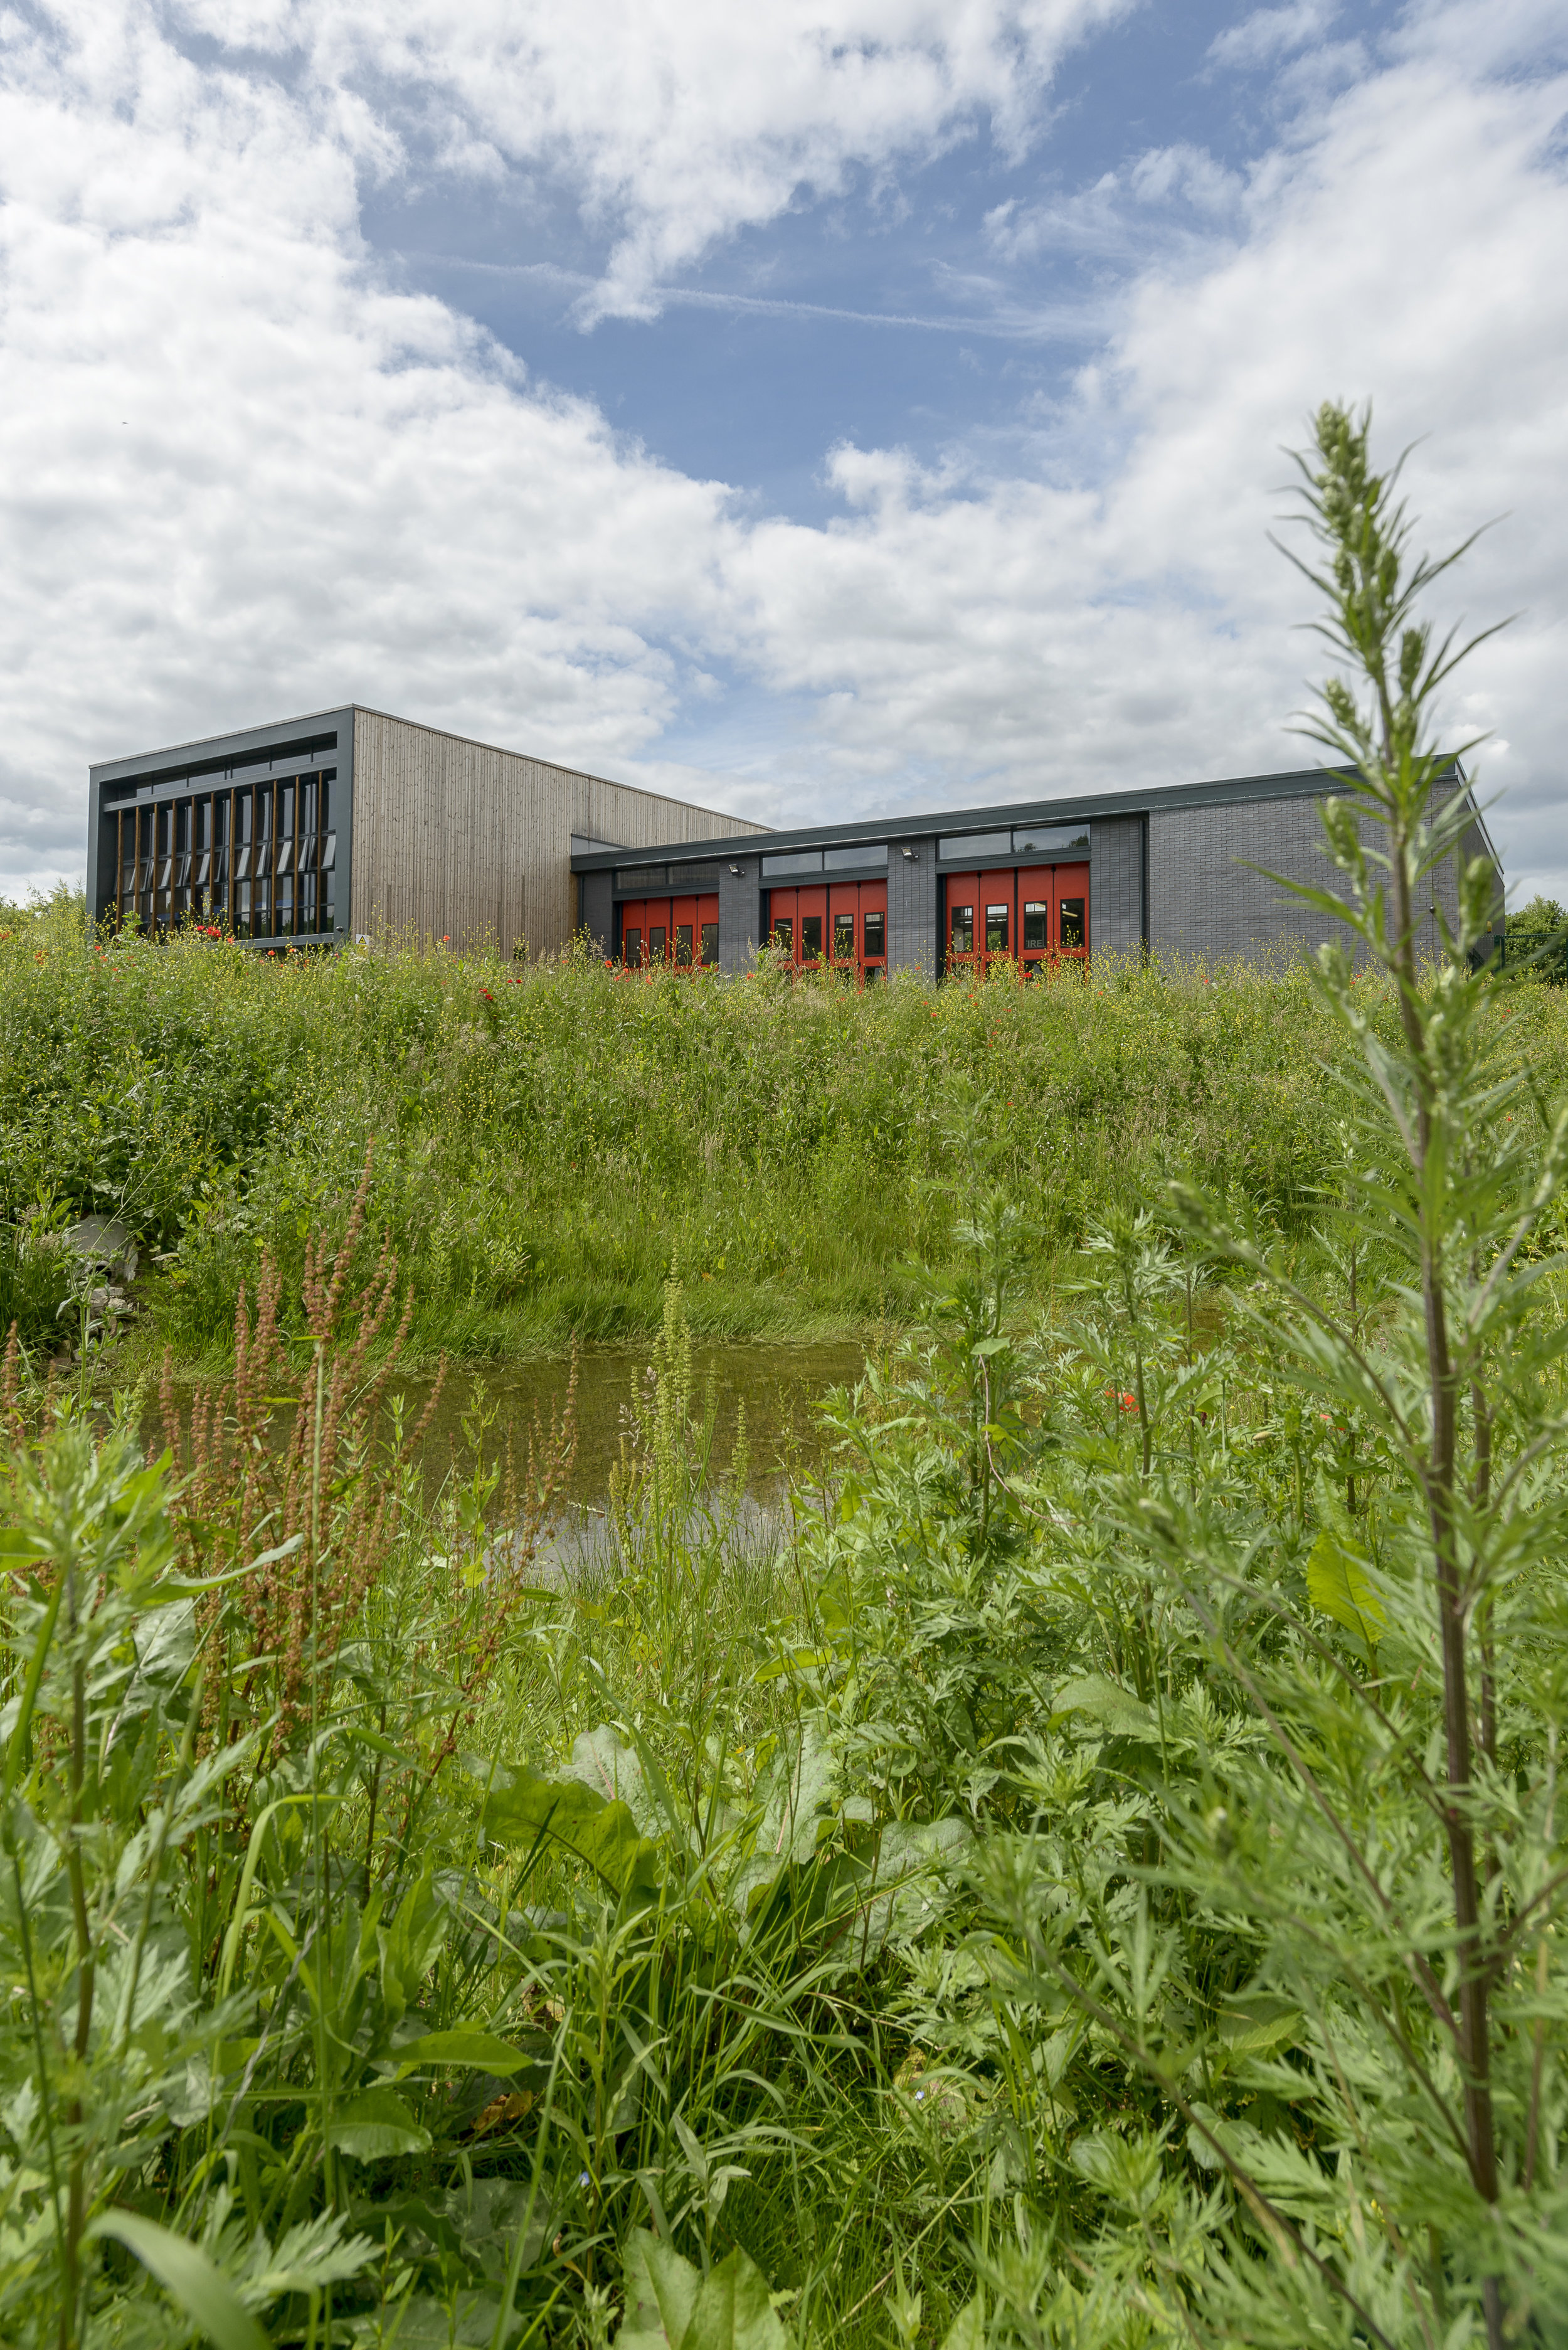 Stephen-Hill-Architects-Parkway-Fire-Station-Sheffield-09